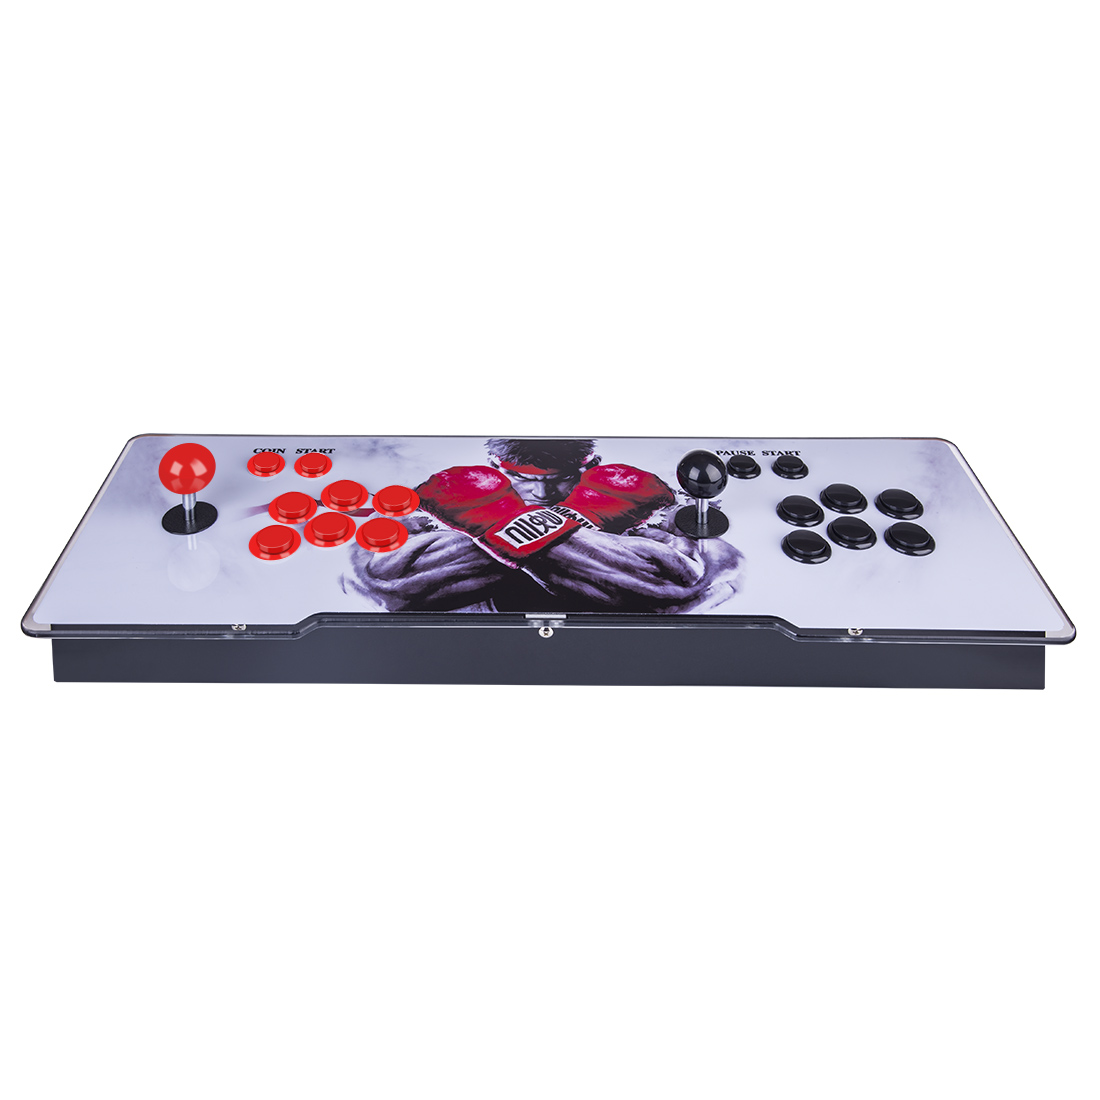 Pandora Box 3D 12S 3333 Games Multi-player Arcade Game Console (Artwork: Black Dragon) (Metal Body)